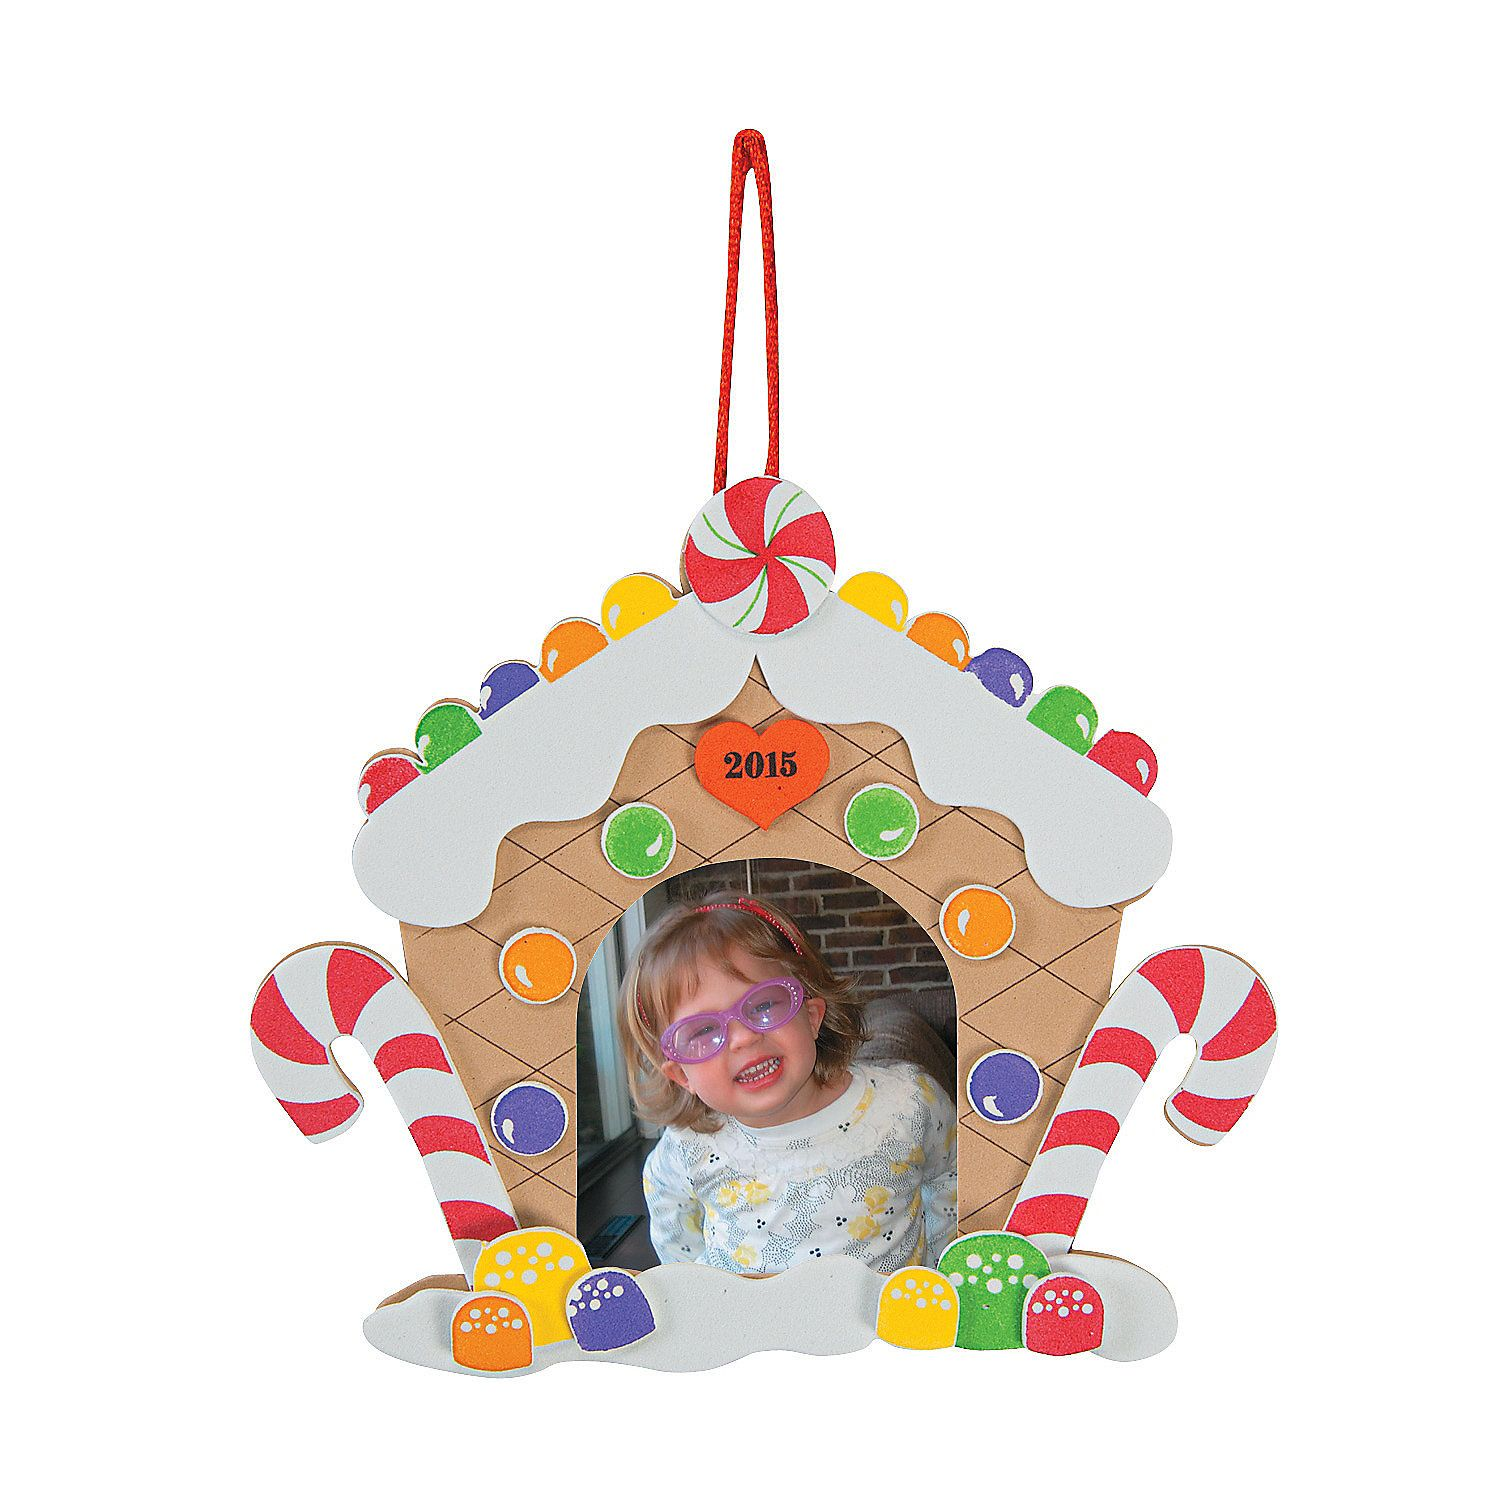 2015 Gingerbread House Picture Frame Ornament Craft Kit  Discontinued